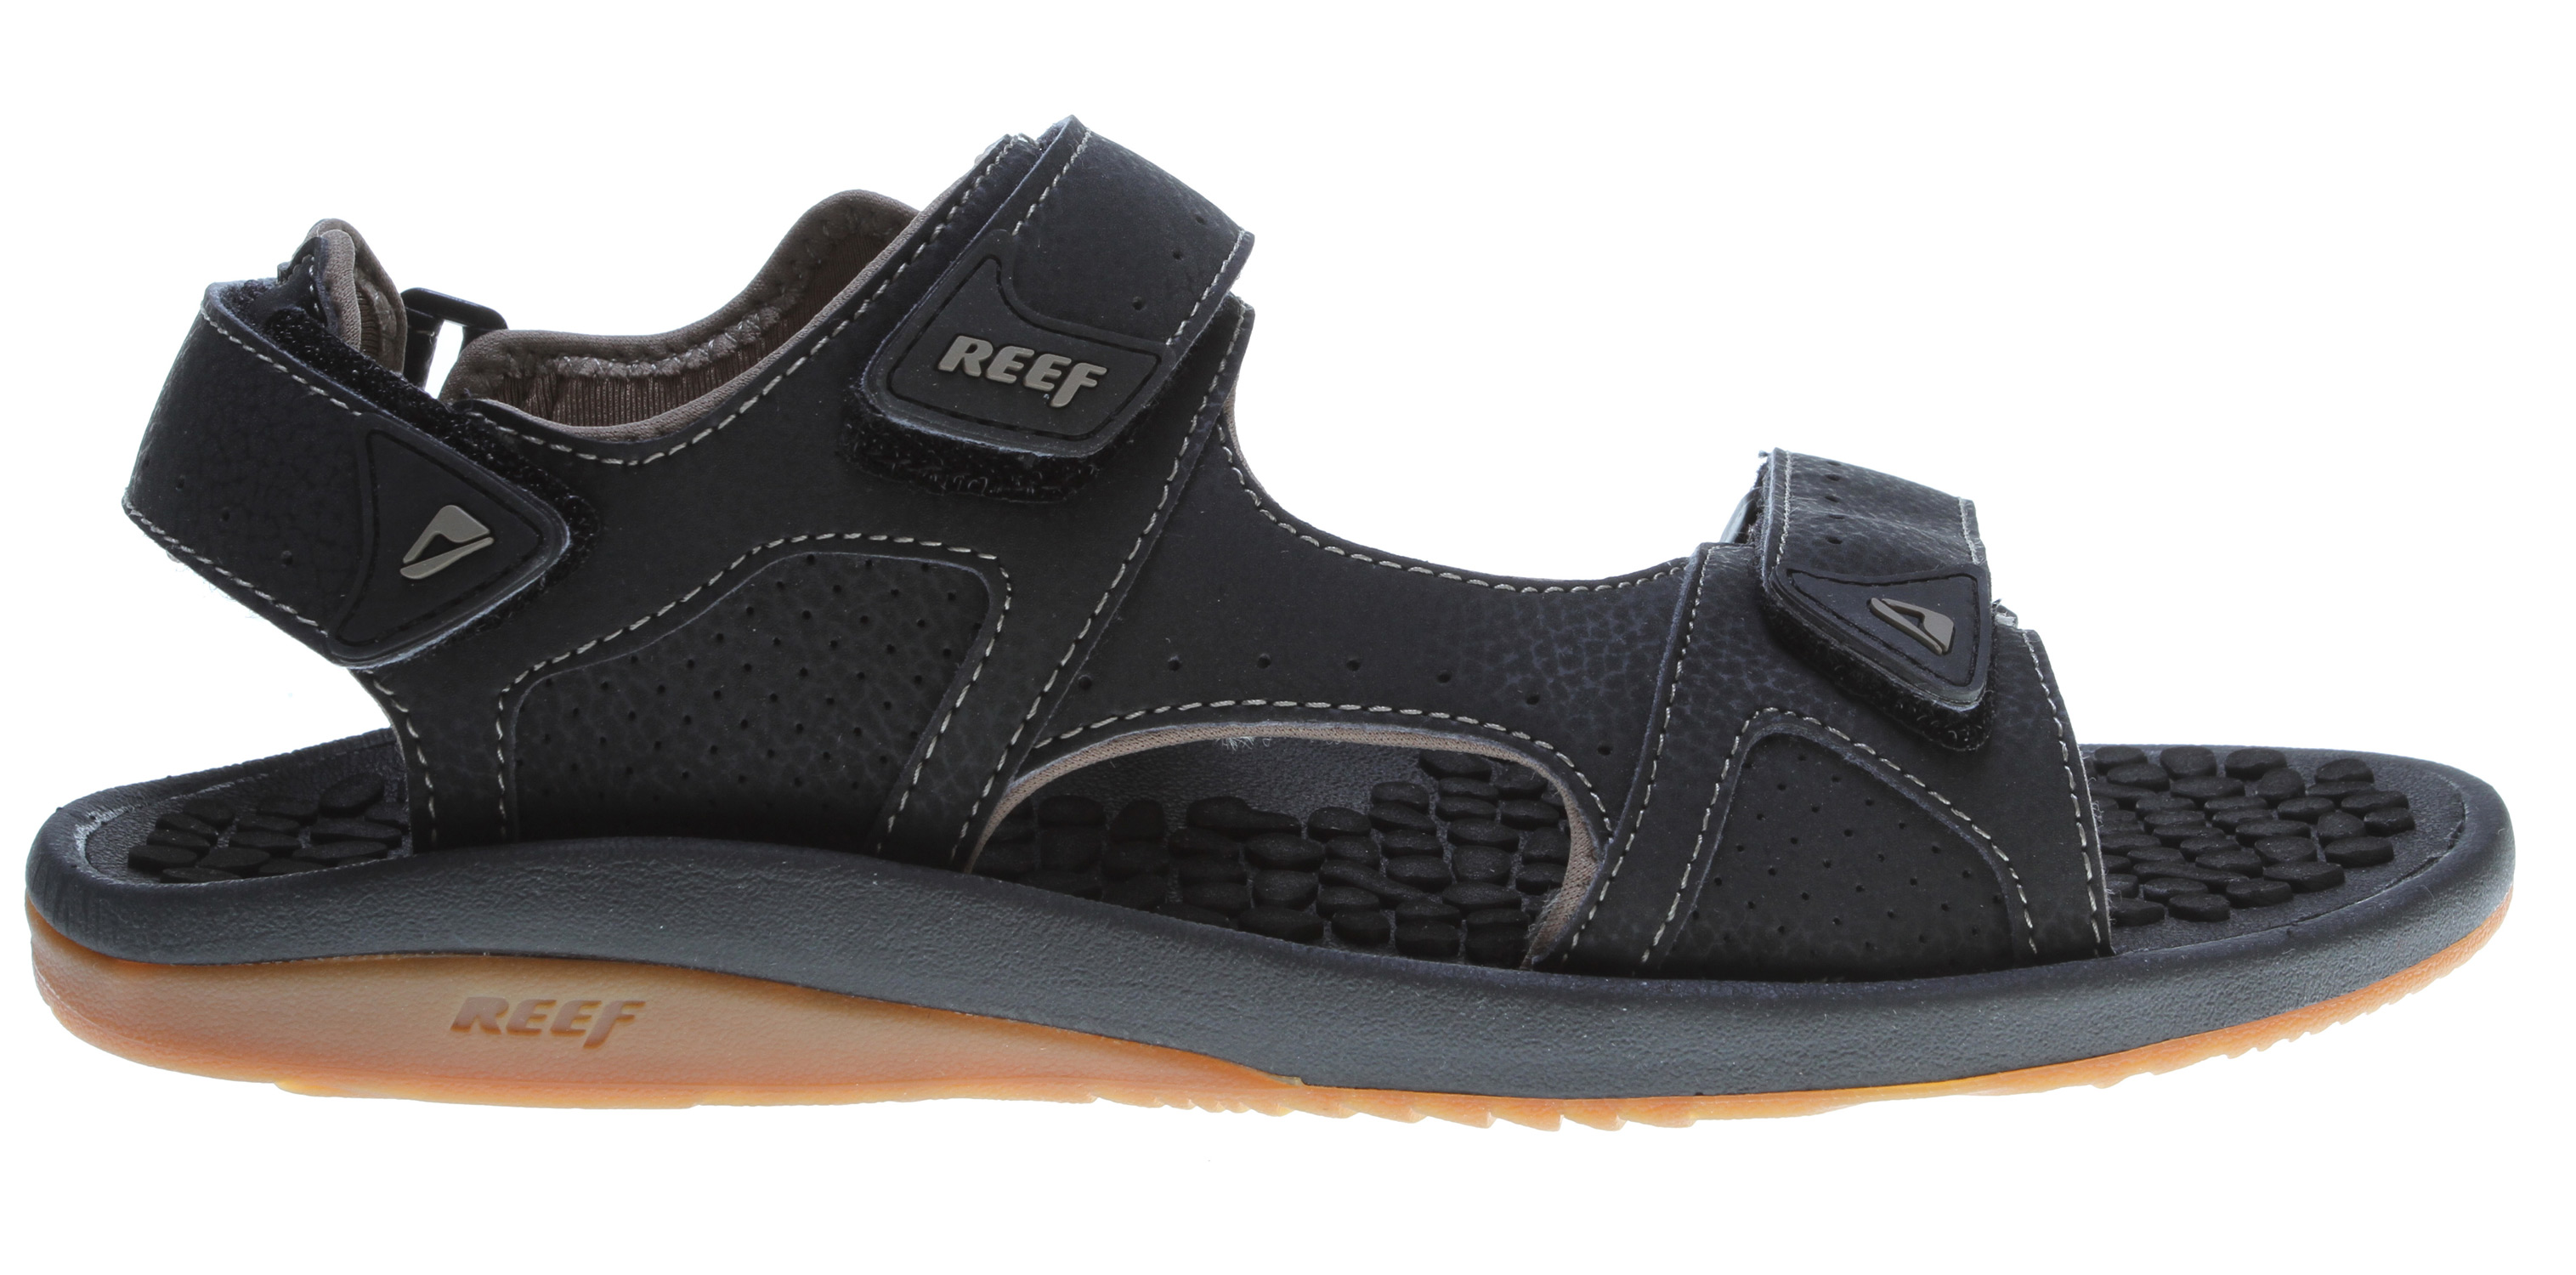 Surf Key Features of the Reef Olas Cage SL Sandals: water friendly leather adjustable cage upper with bridge support feature Quick dry lining Heavy texture thermo-sliced textured eva footbed Deep contoured compression molded eva midsole Reef supreme design outsole made of 25% recycled rubber Supreme box packaging - $45.95